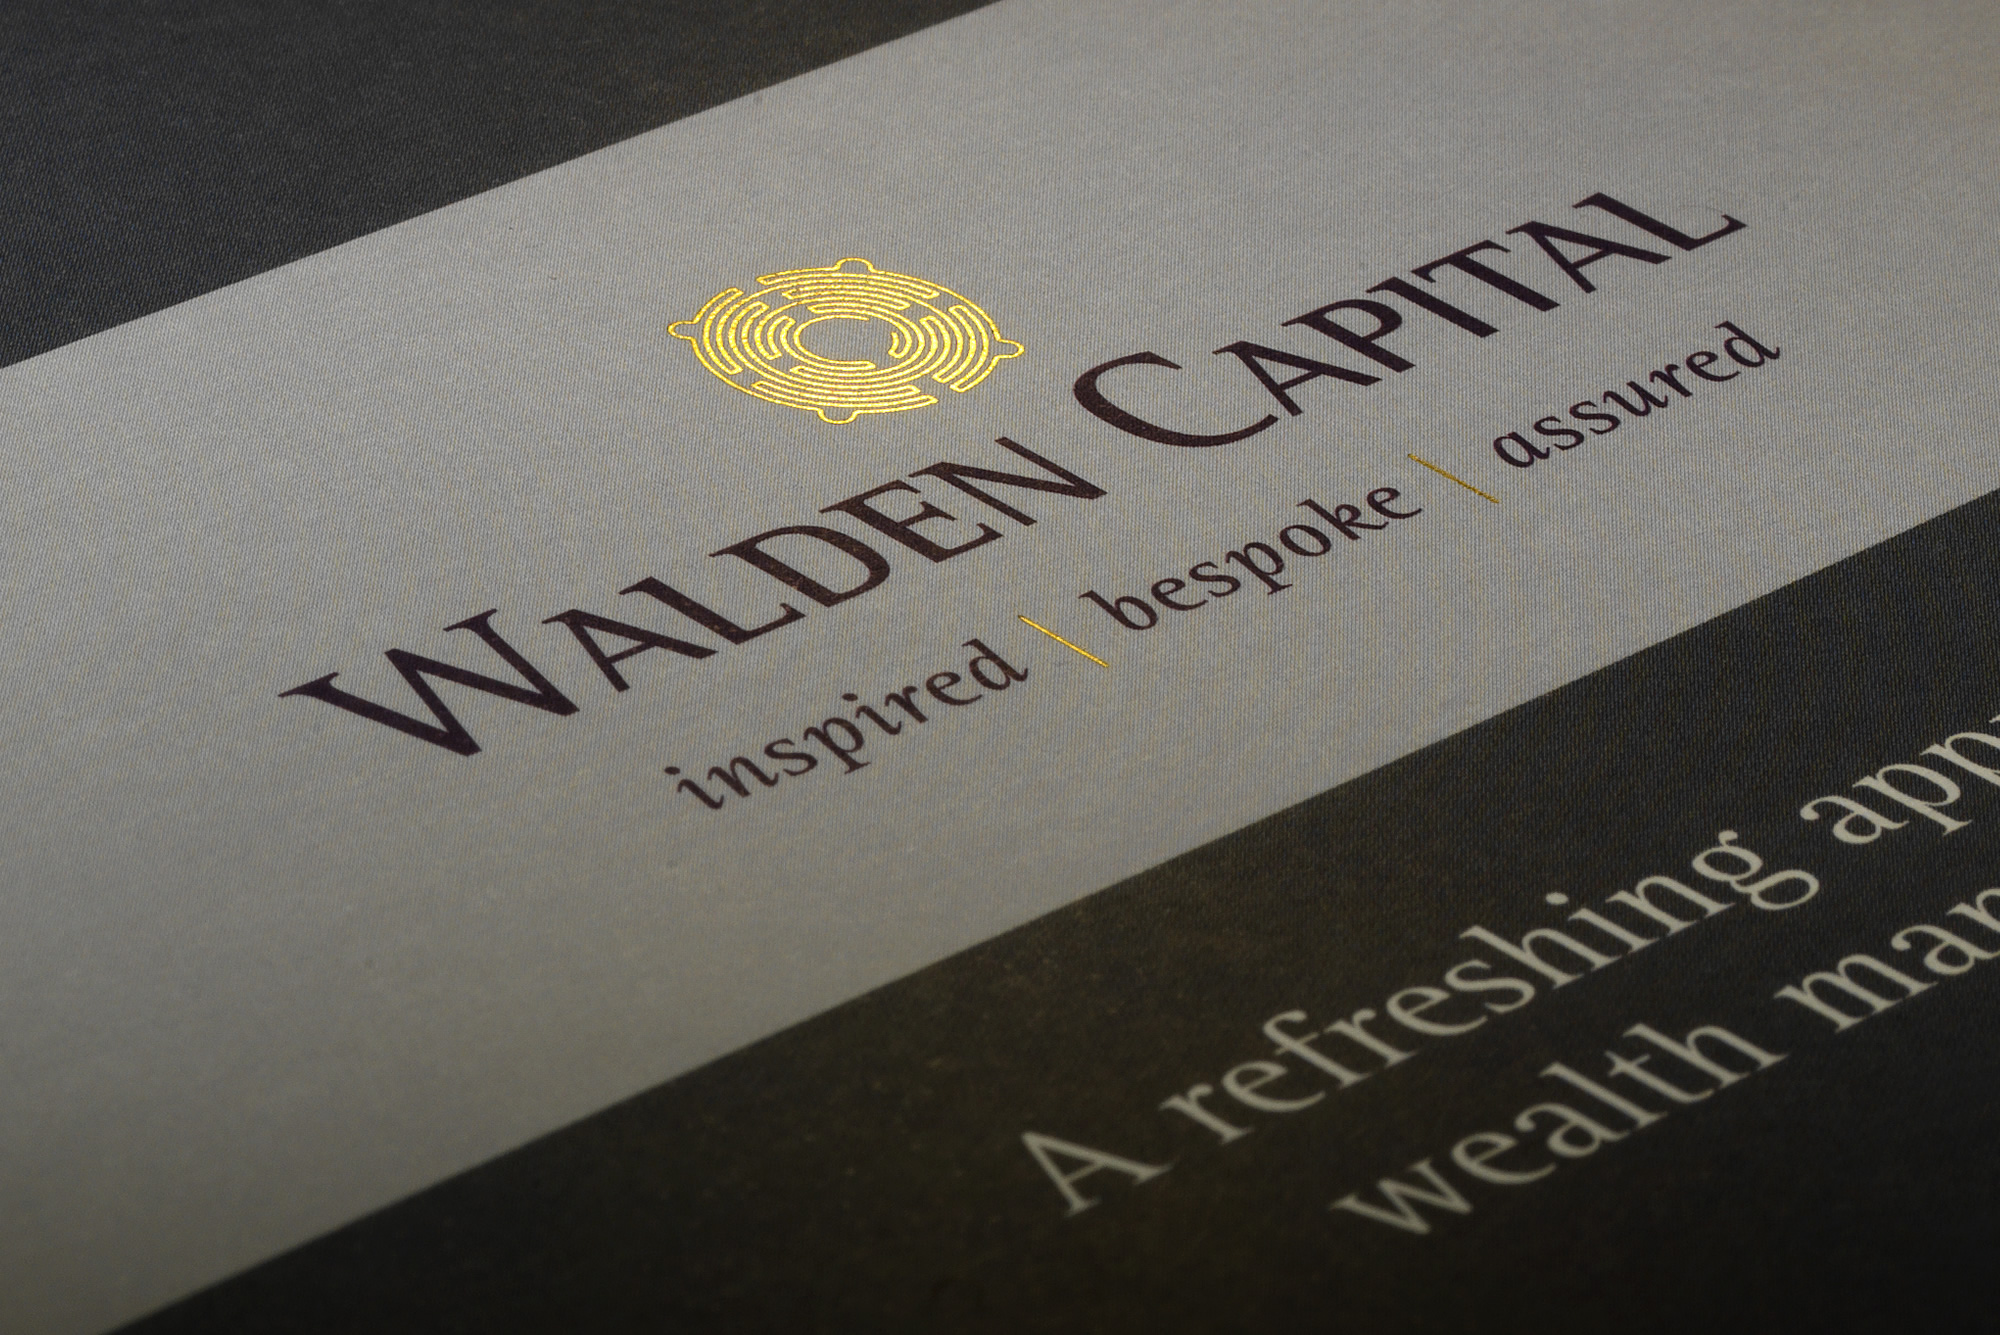 walden-capital-branding-design-lrg